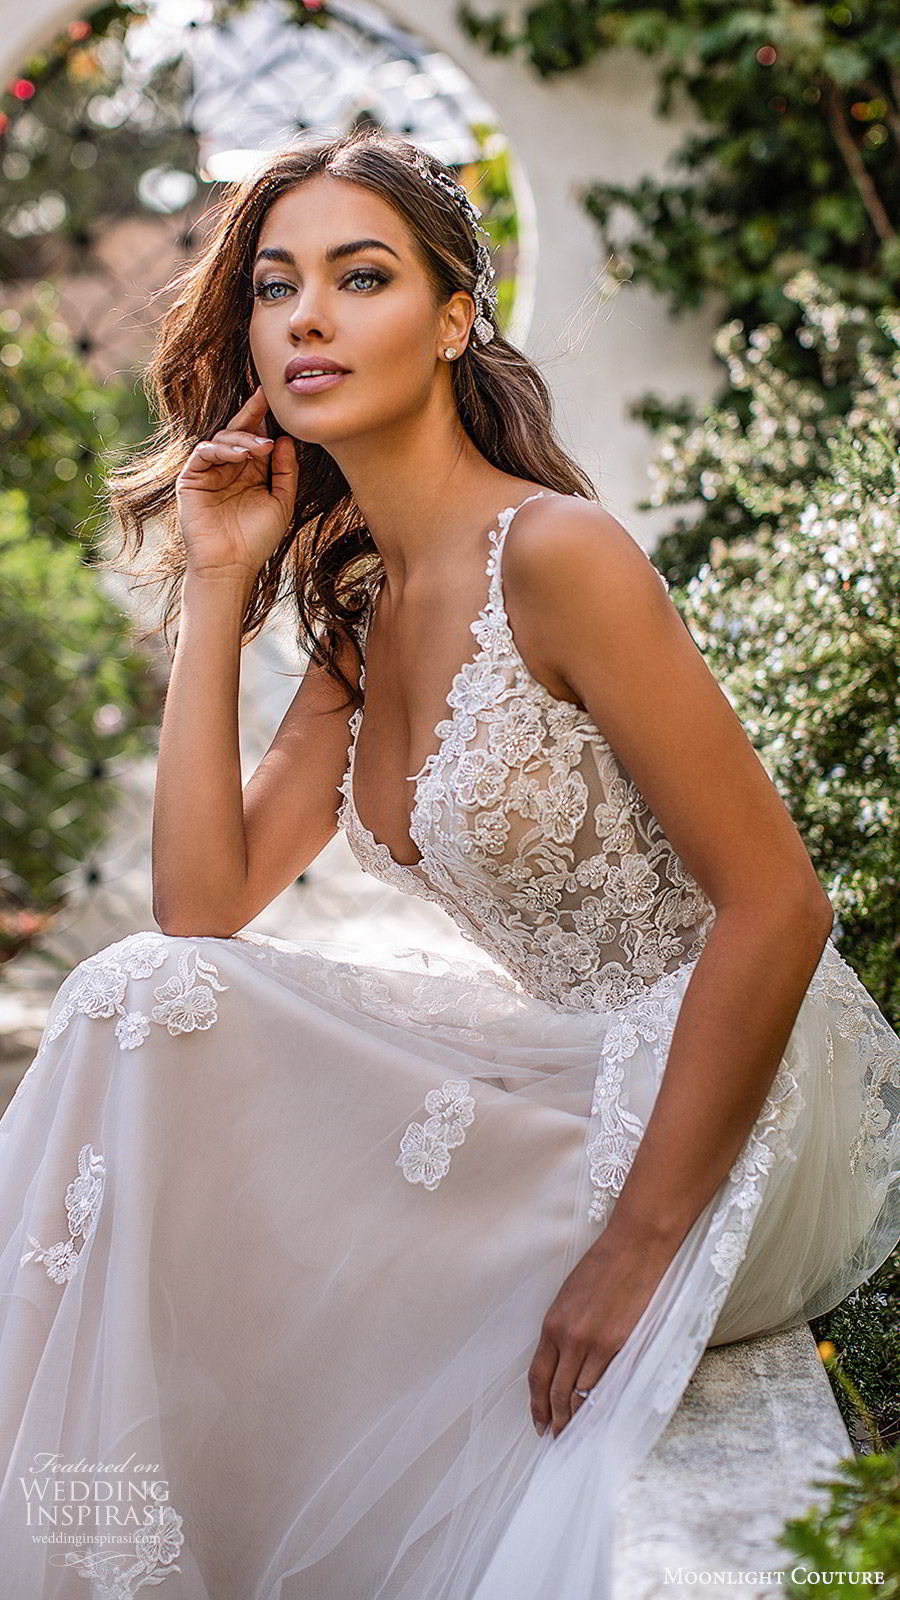 moonlight couture fall 2019 bridal sleeveless lace straps sweetheart neckline embellished bodice a line ball gown wedding dress (1) romantic princess tiered skirt chapel train blush zsv